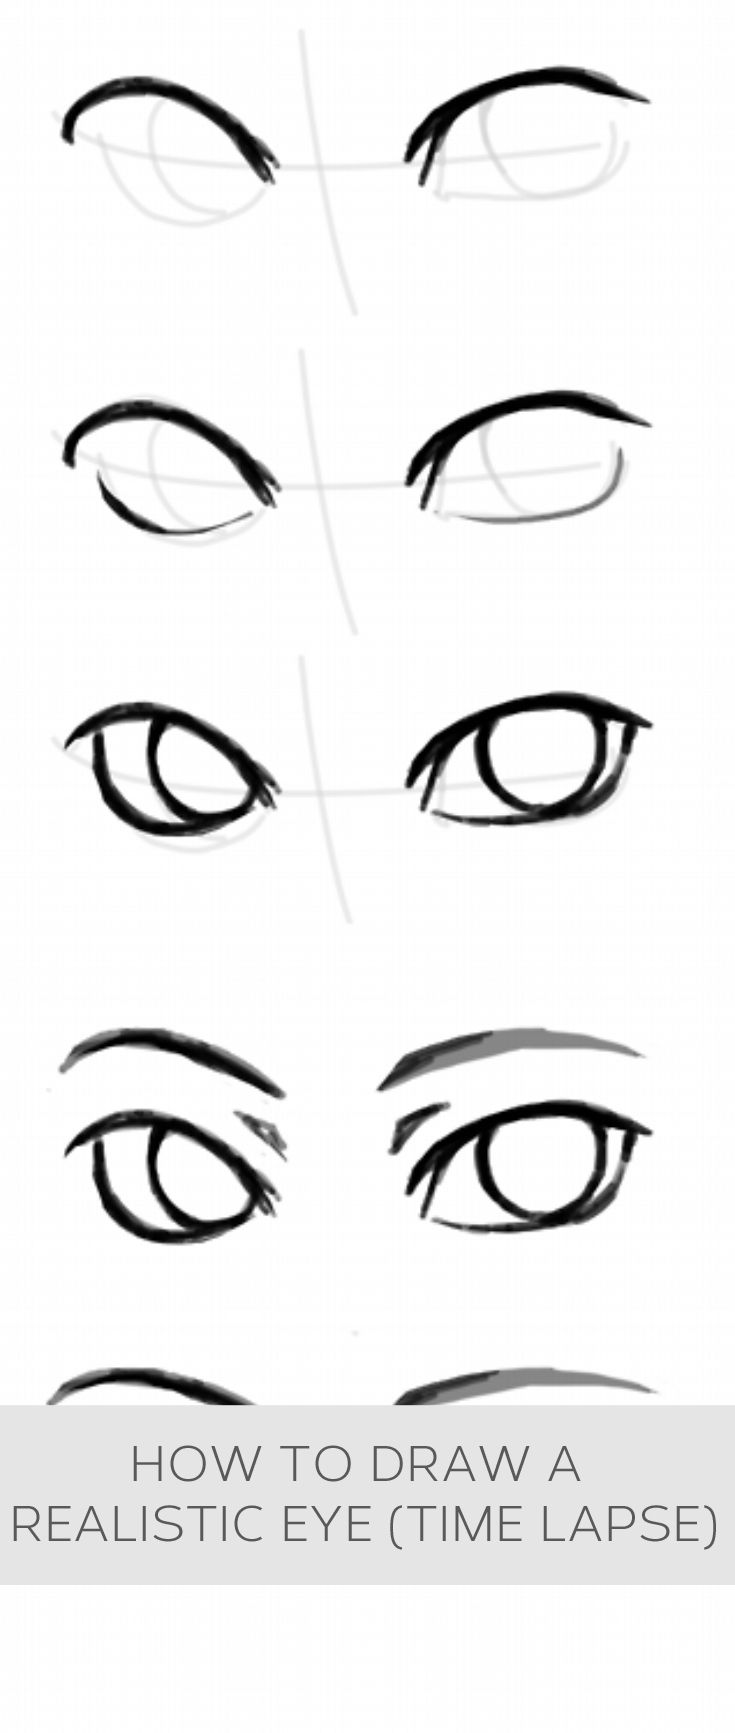 How To Draw A Realistic Eye Time Lapse Howto Helpful Useful Tips Advice Drawing People Sketches Drawings